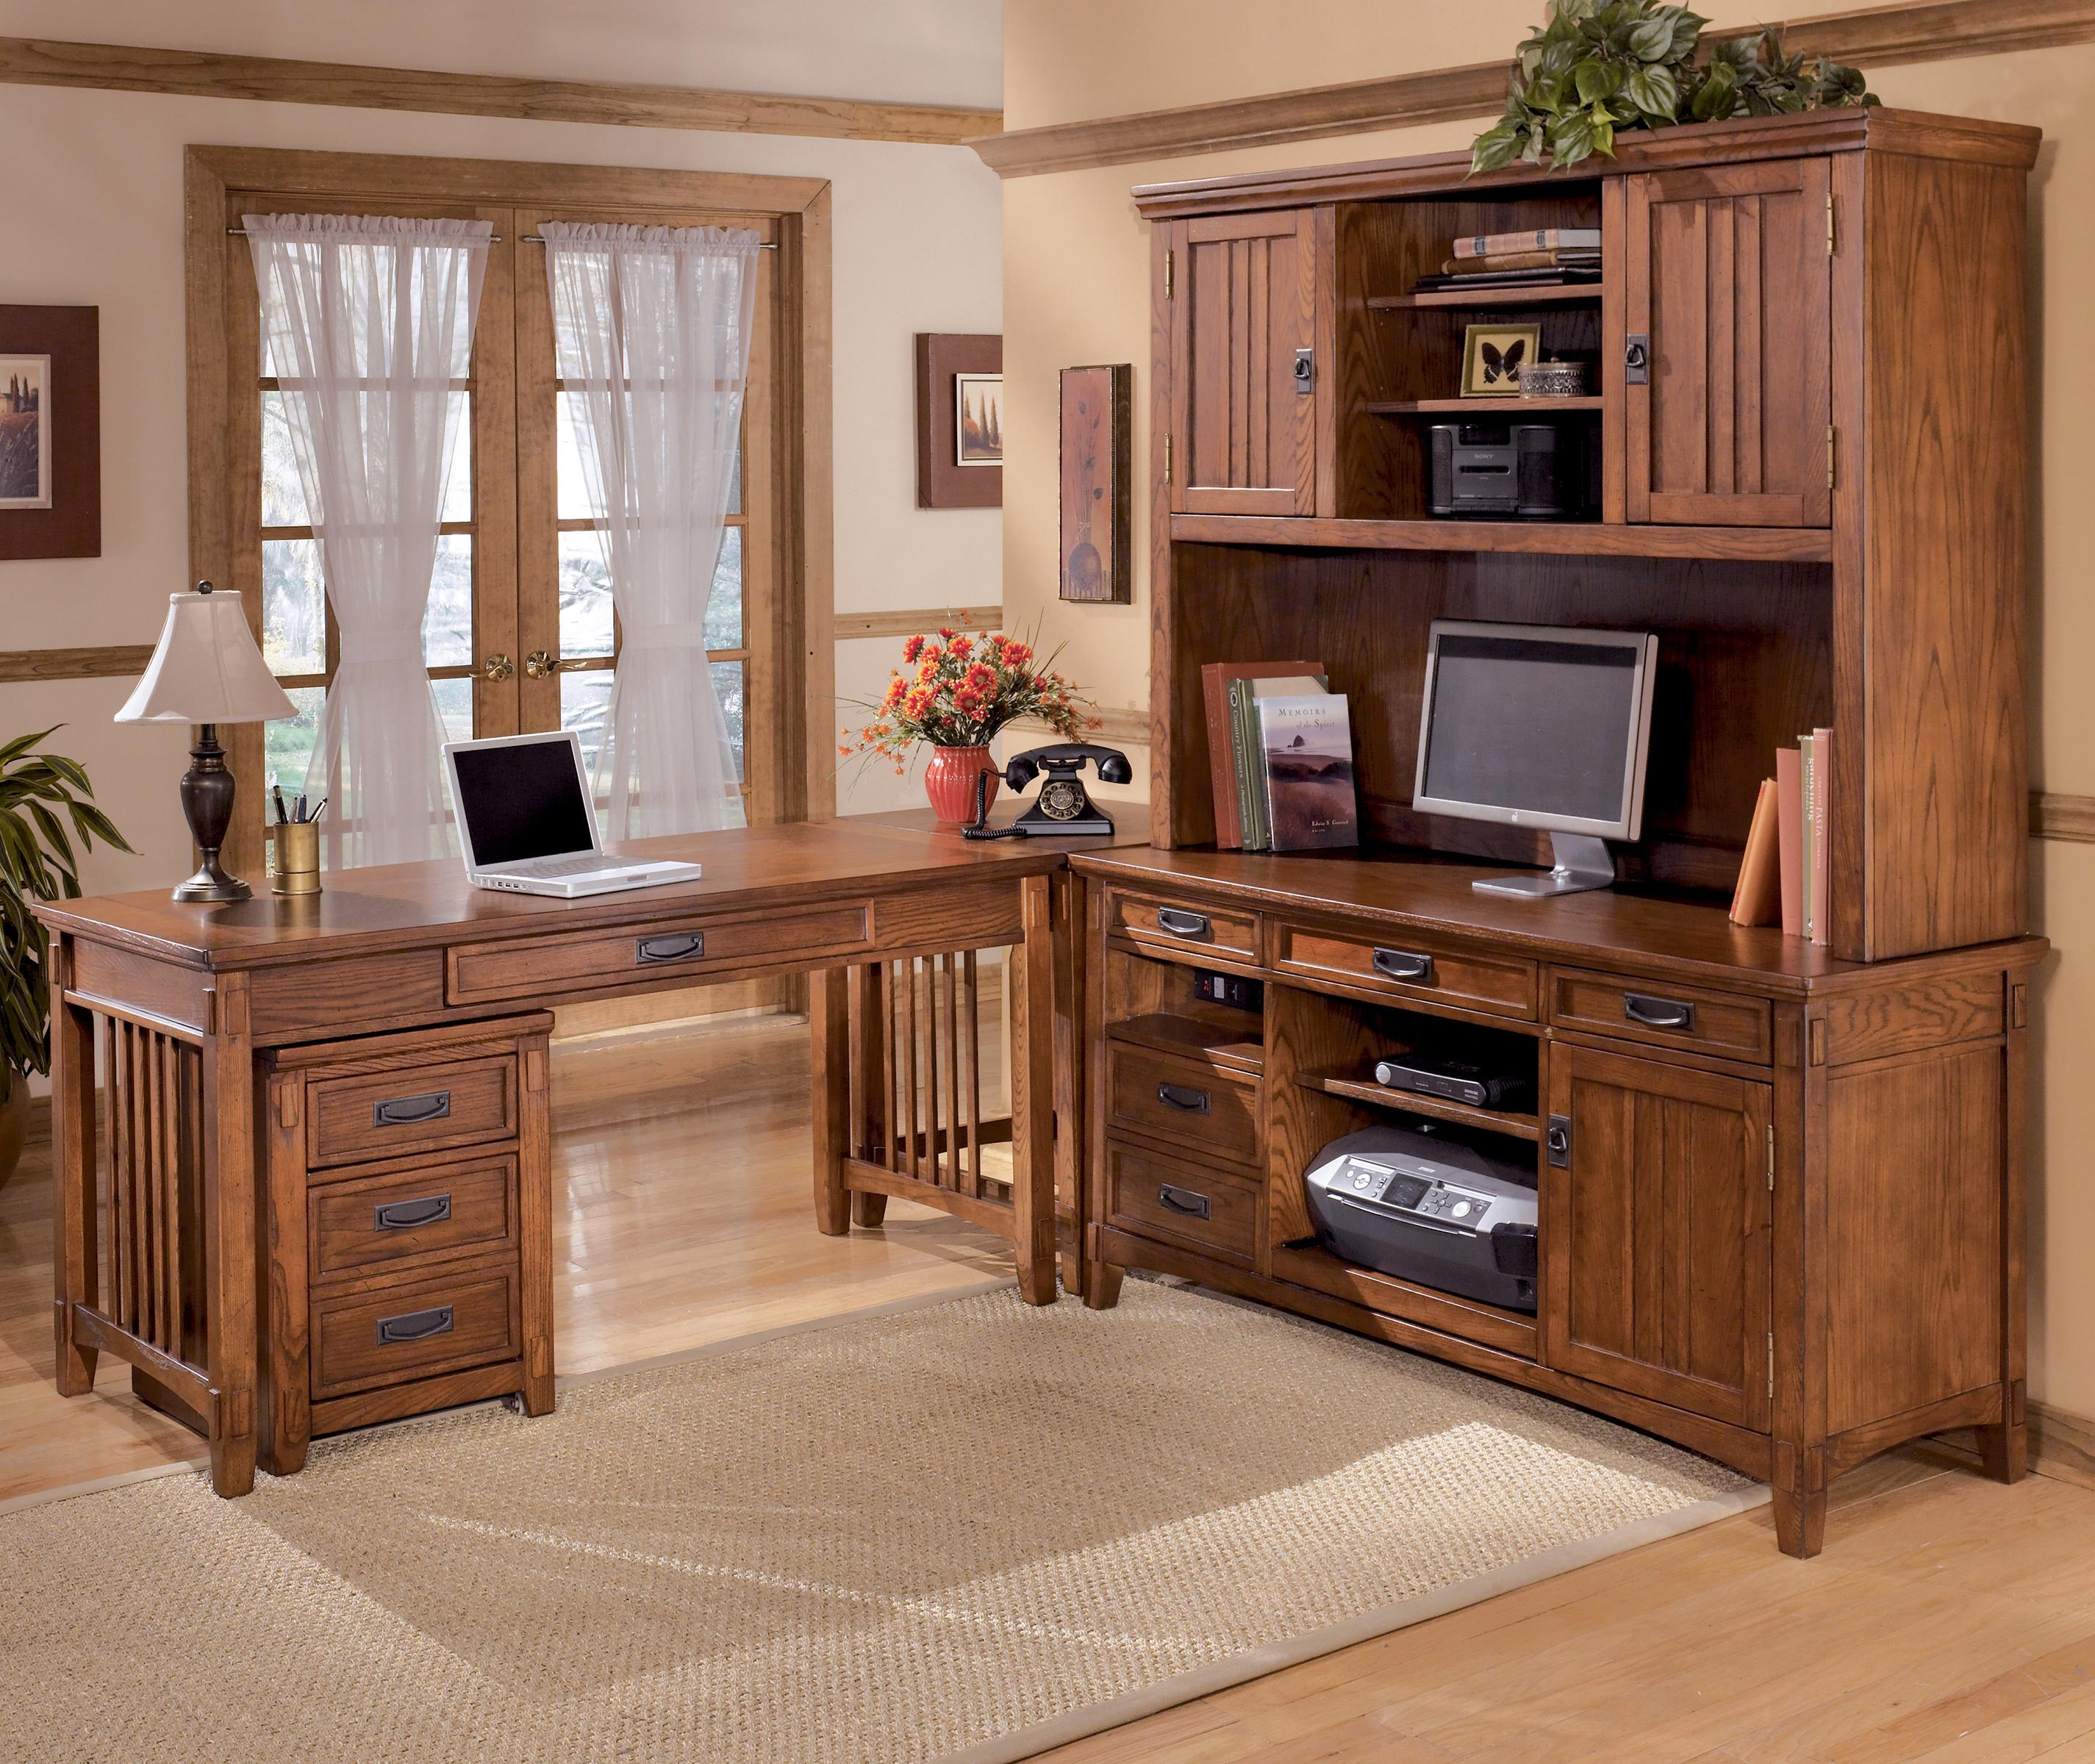 Ashley Furniture Cross Island 5 Piece L-Shape Desk - Item Number: H319-44+12+46+47+49